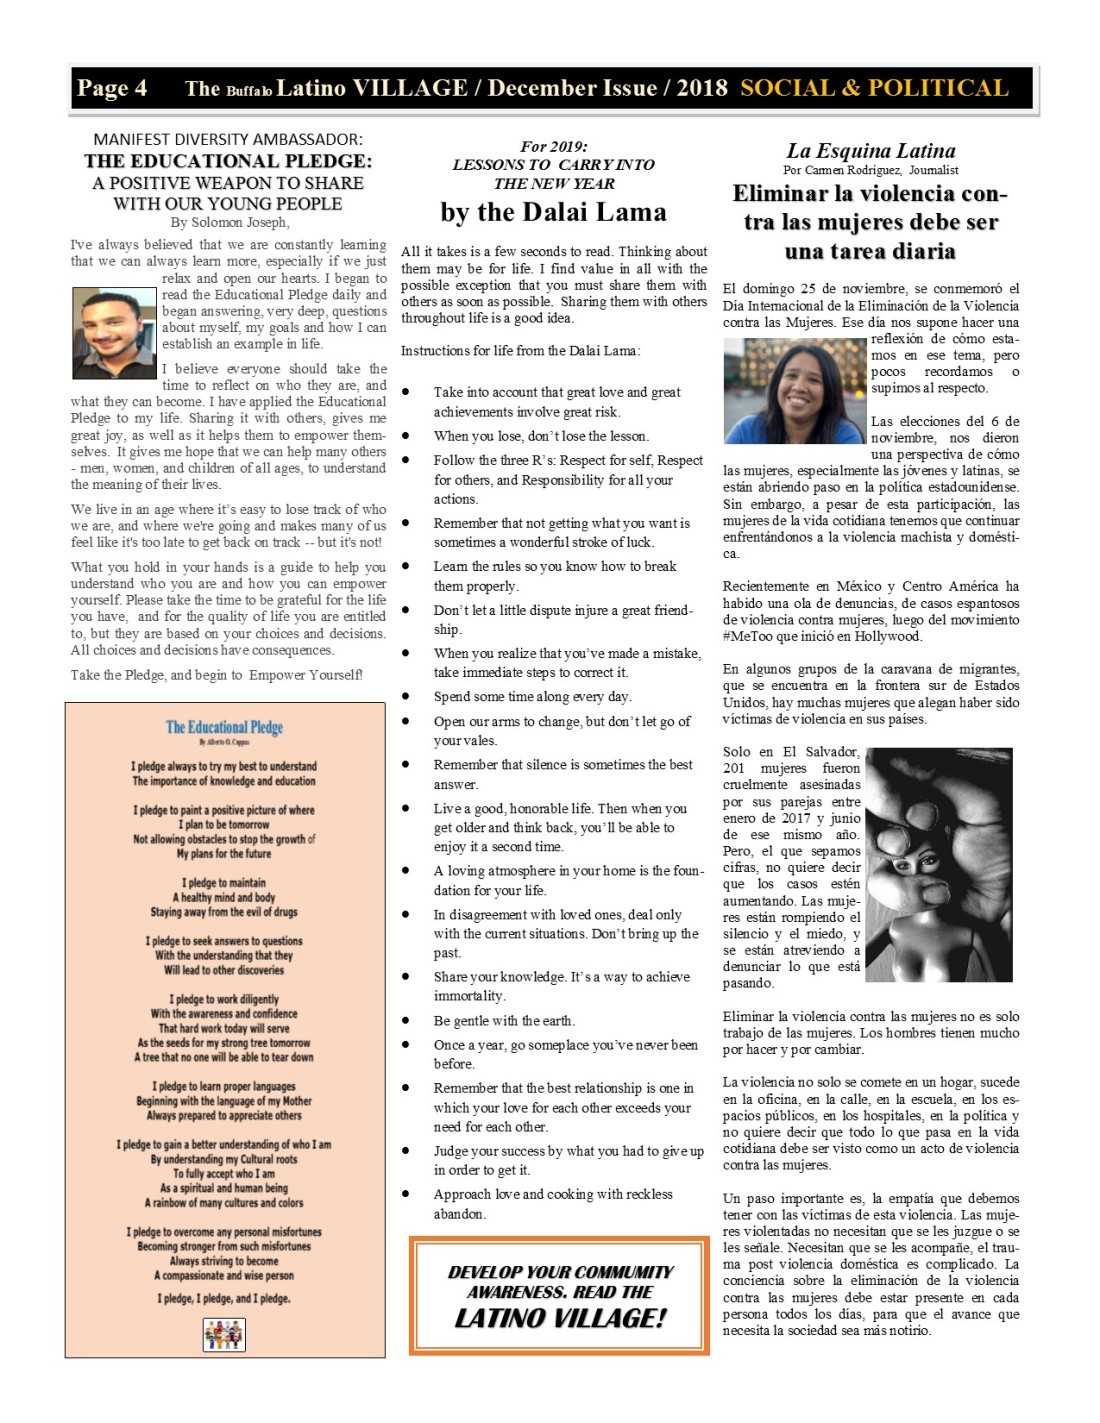 Pager 4 Latino Village Newslette December Issue Volume 2 No 14